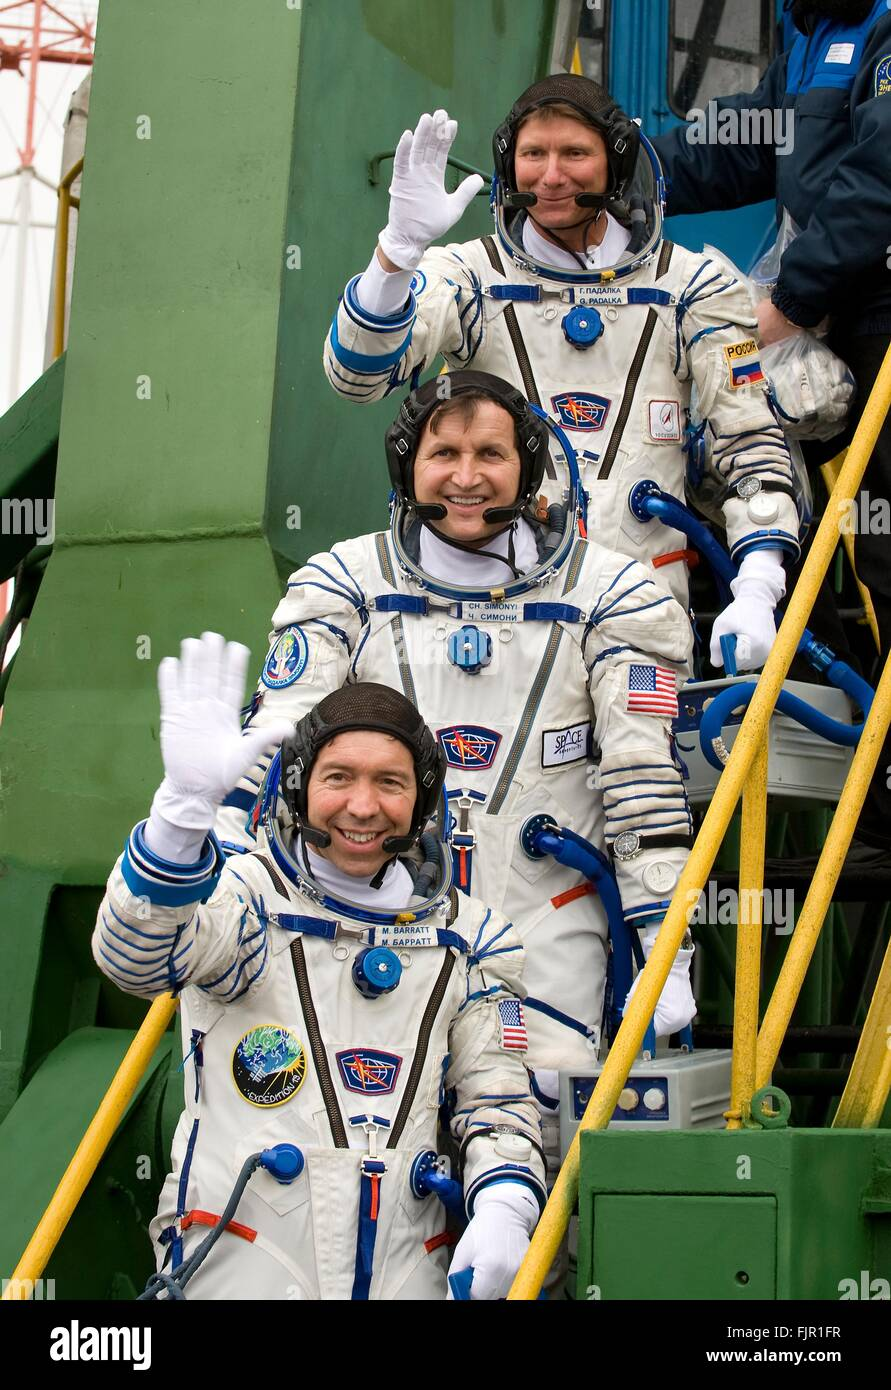 International Space Station Expedition 19 crew wave as they board the Soyuz TMA-10 spacecraft ahead of launch March - Stock Image